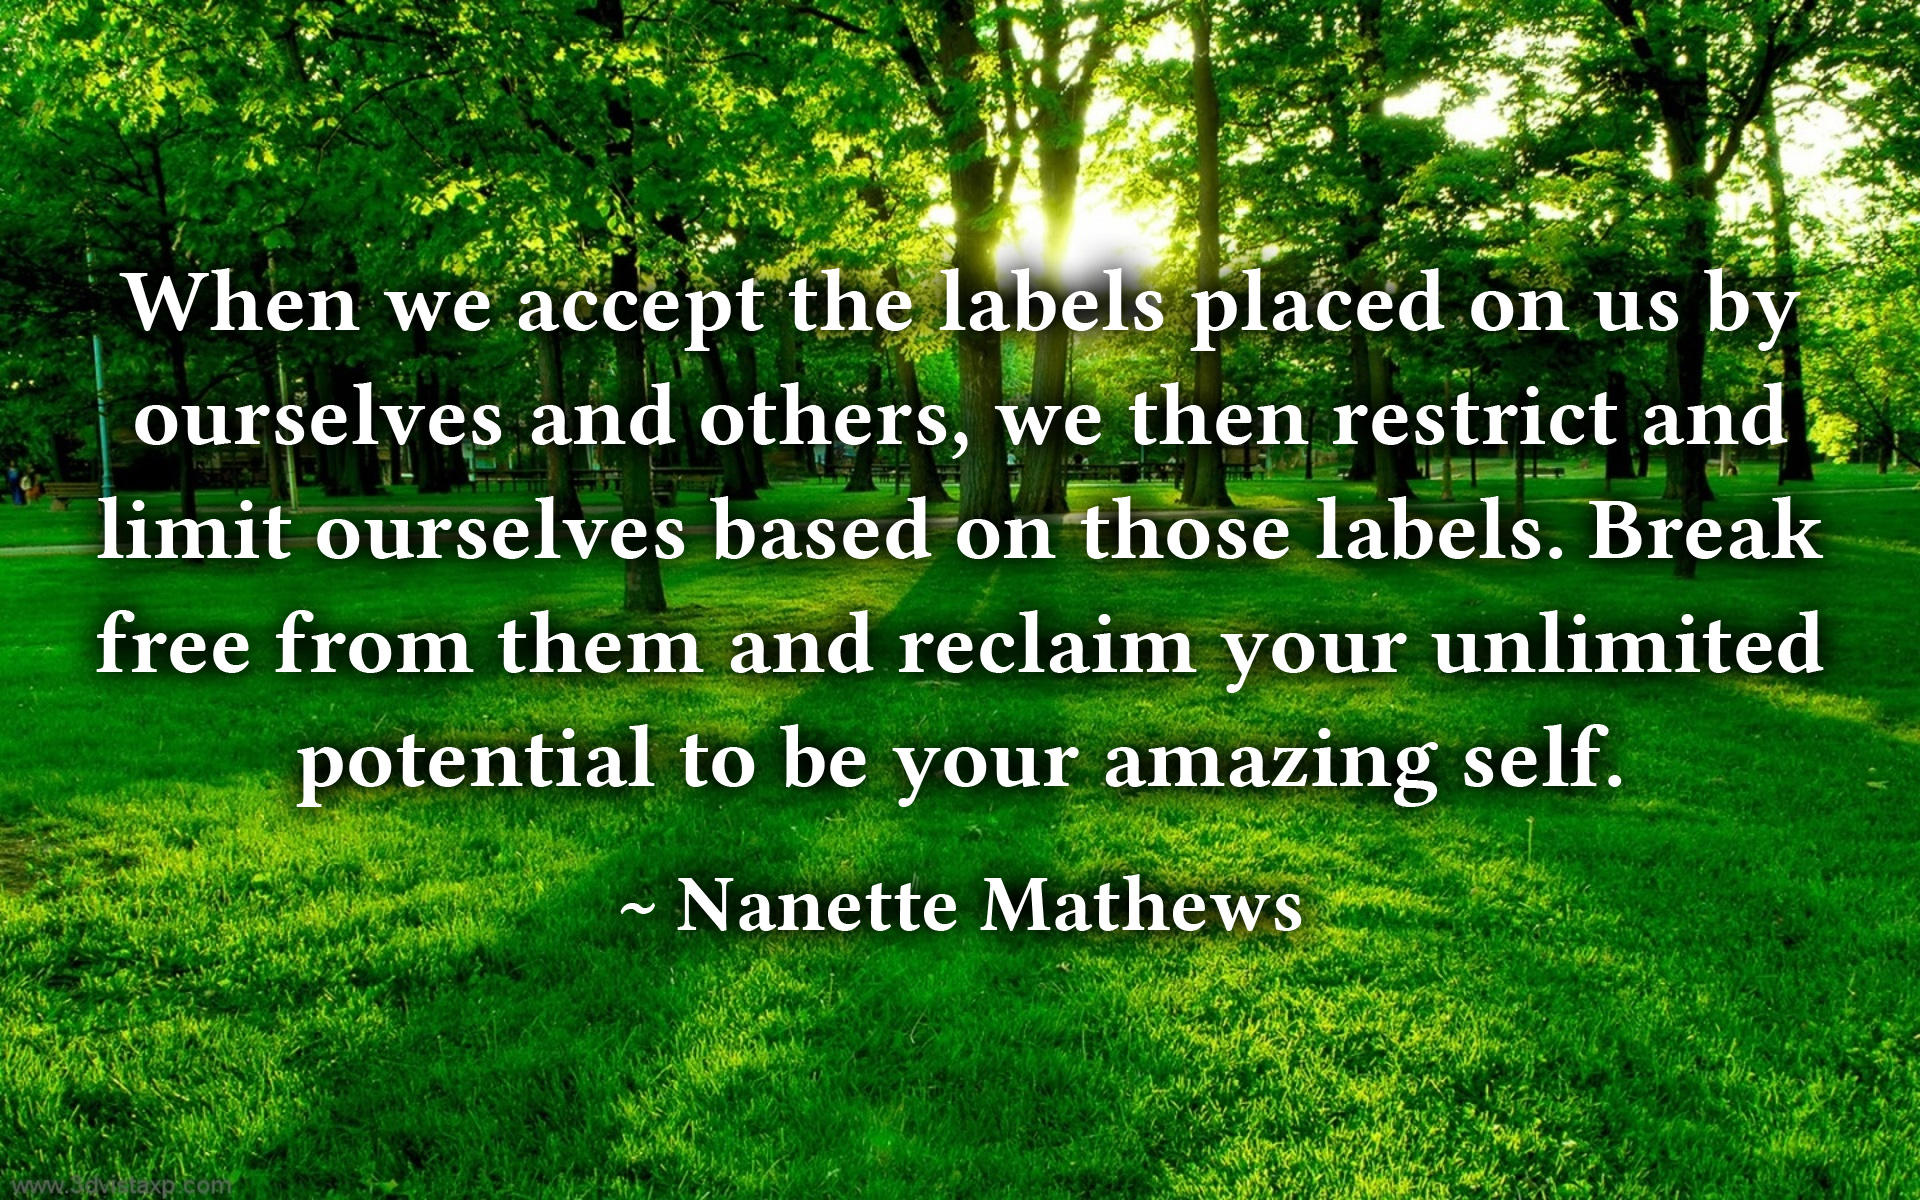 A Quote by Nanette Mathews.jpg